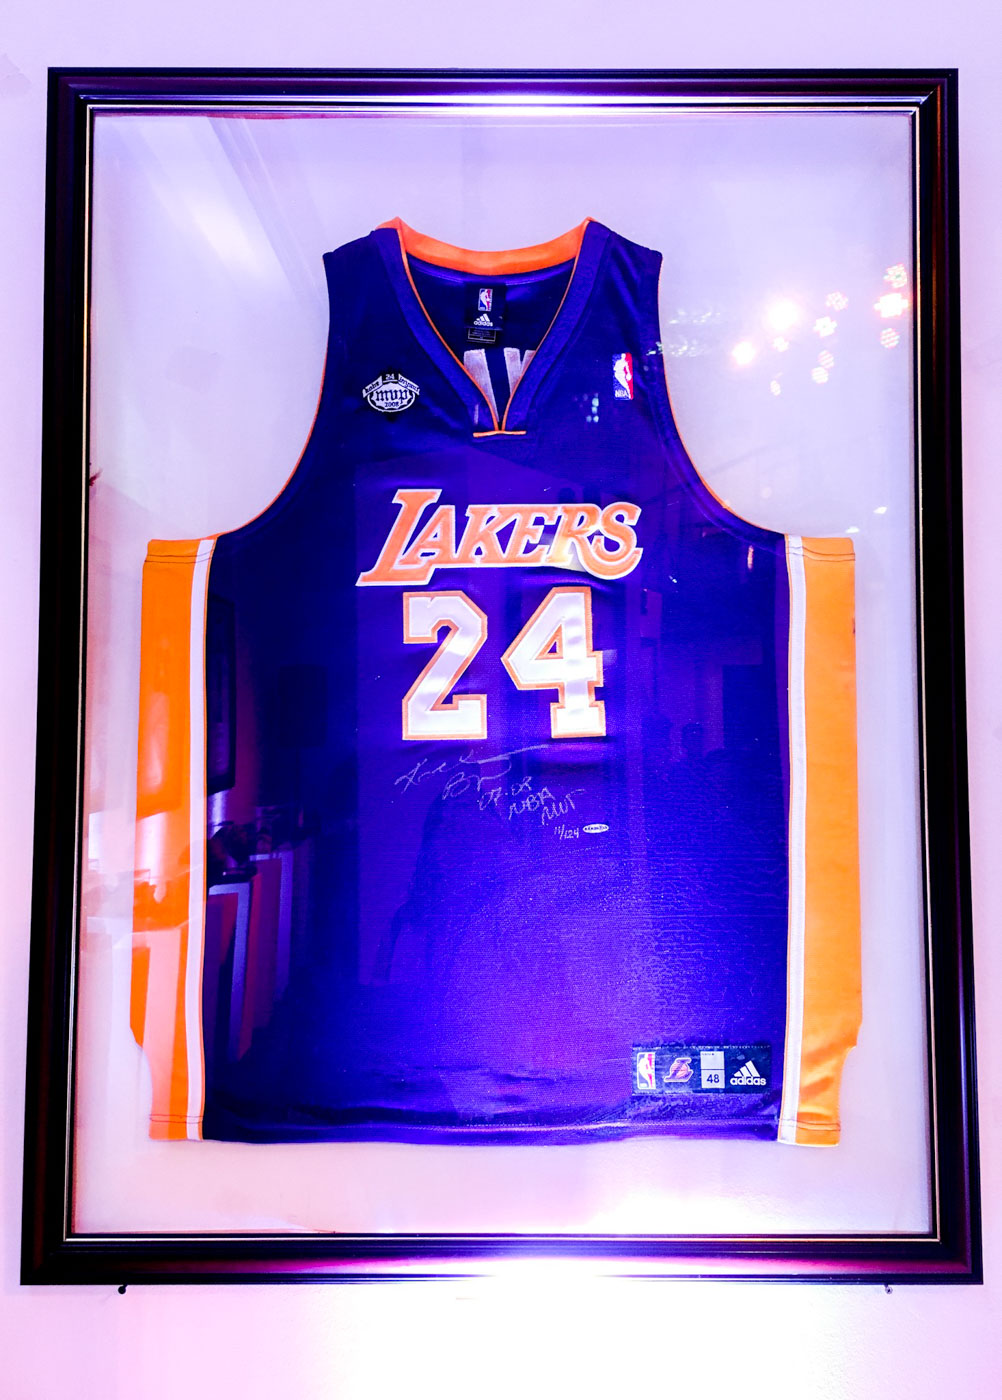 MEMORIES. Kobe Bryant switches his number from 8 to 24 in the 2006-2007 season because this was his first high school number. Photo by Beatrice Go/Rappler